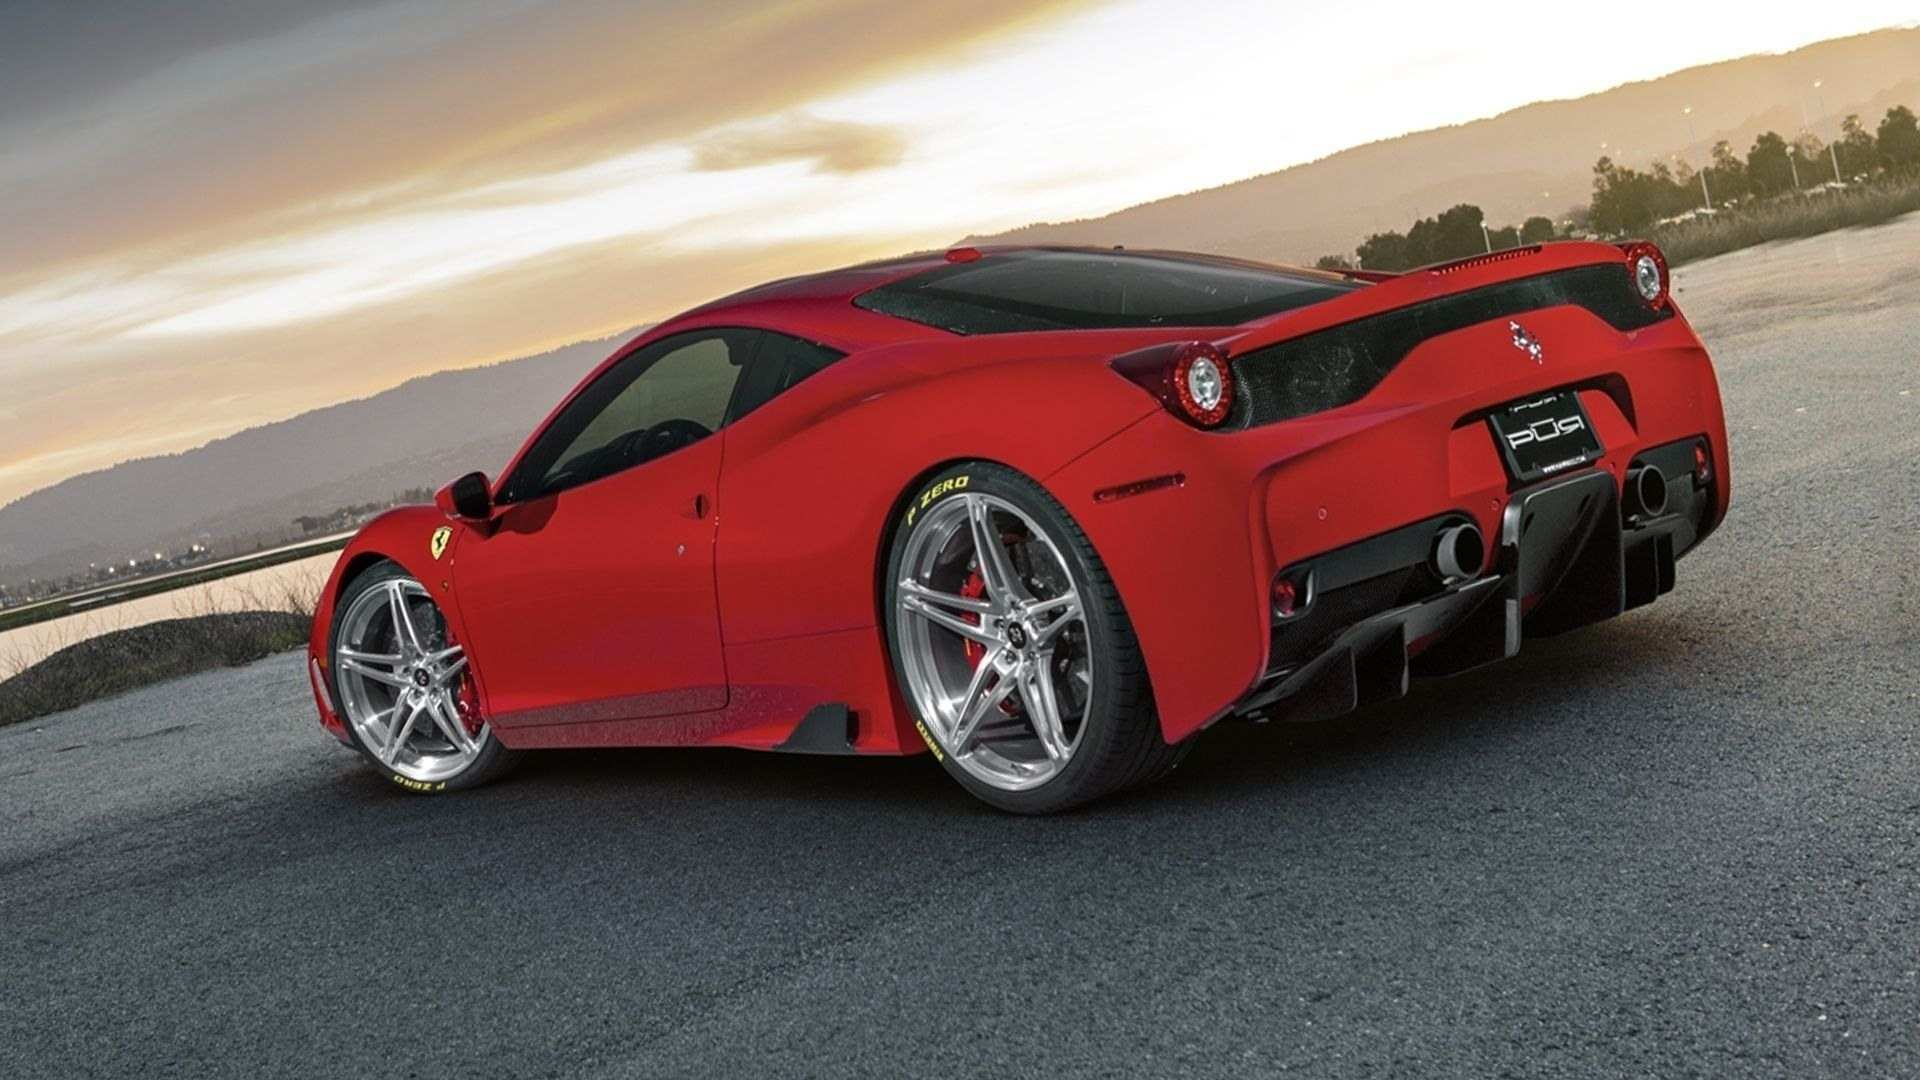 74 All New 2019 Ferrari 458 Price